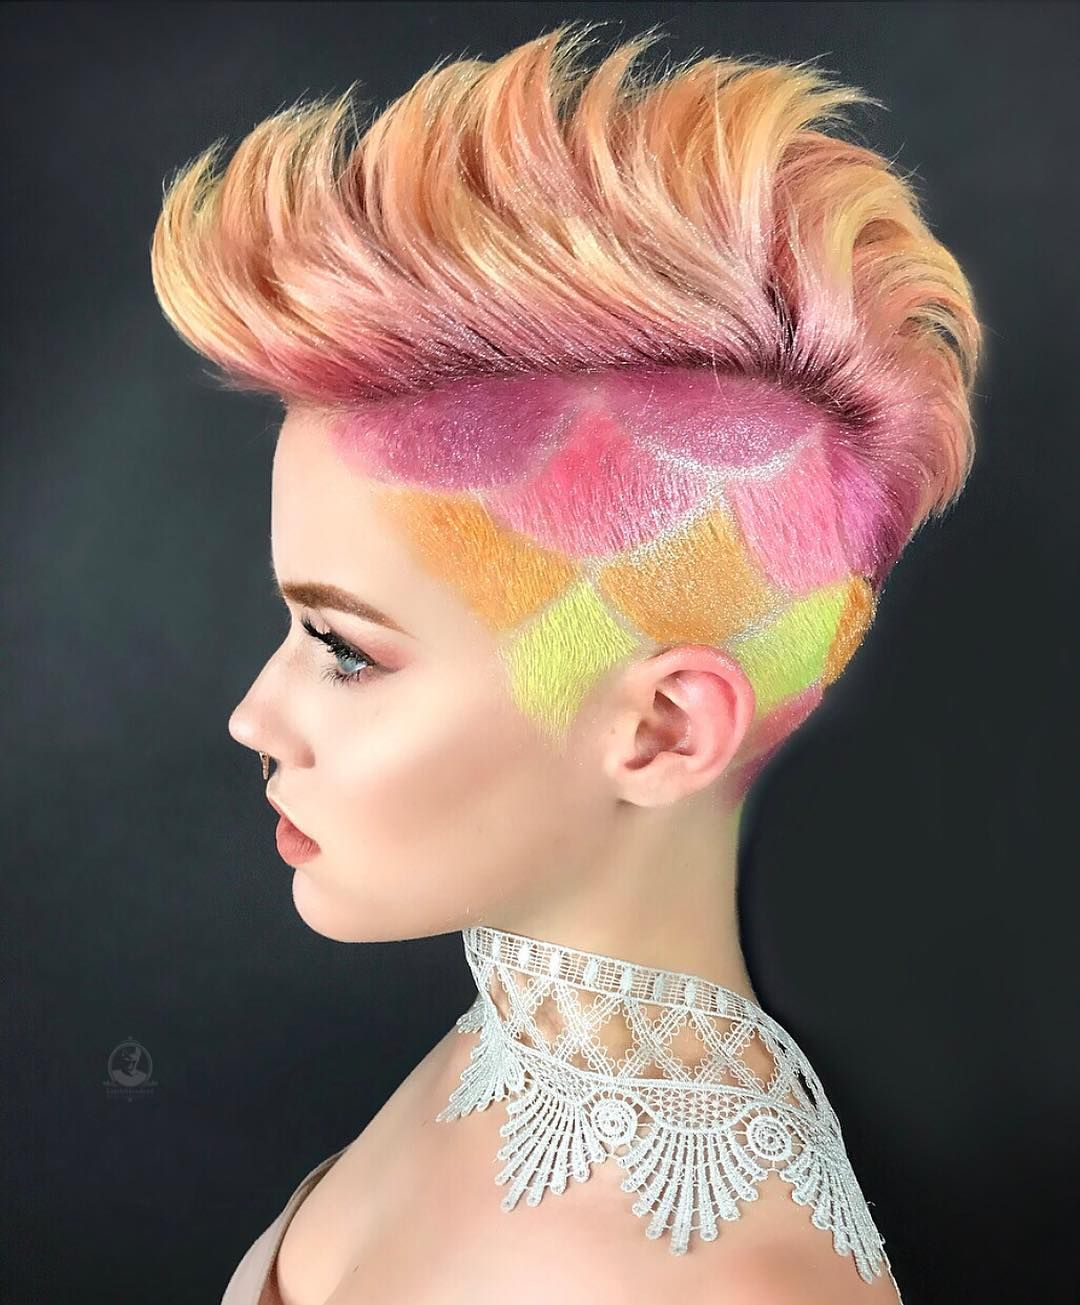 Pin by becky on hair dyes pinterest hair colorist colourful